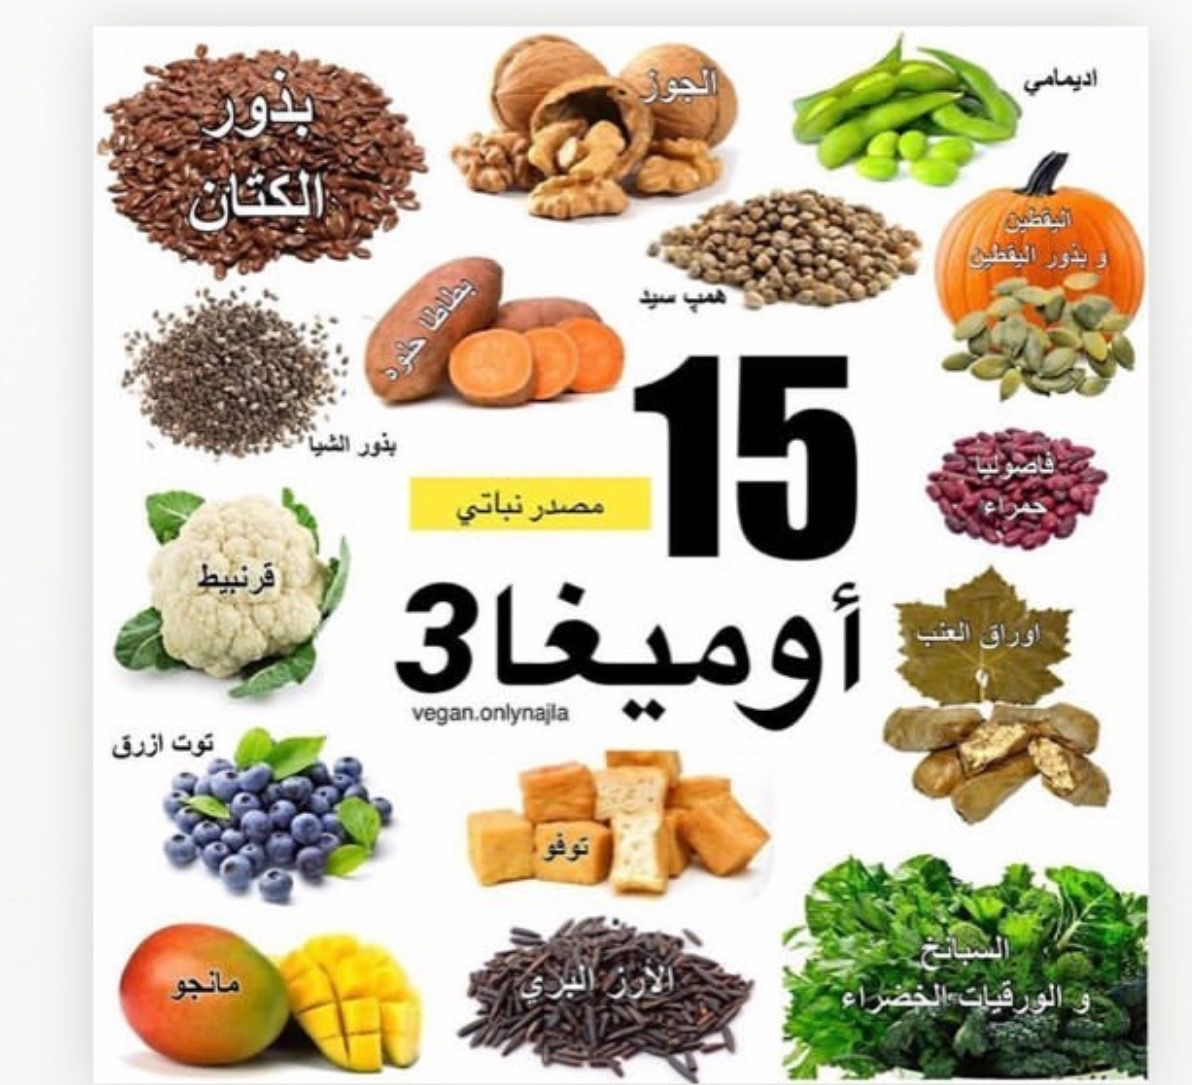 Pin By Ali Mohamed On Vegan Health Fitness Nutrition Health Food Health Facts Food